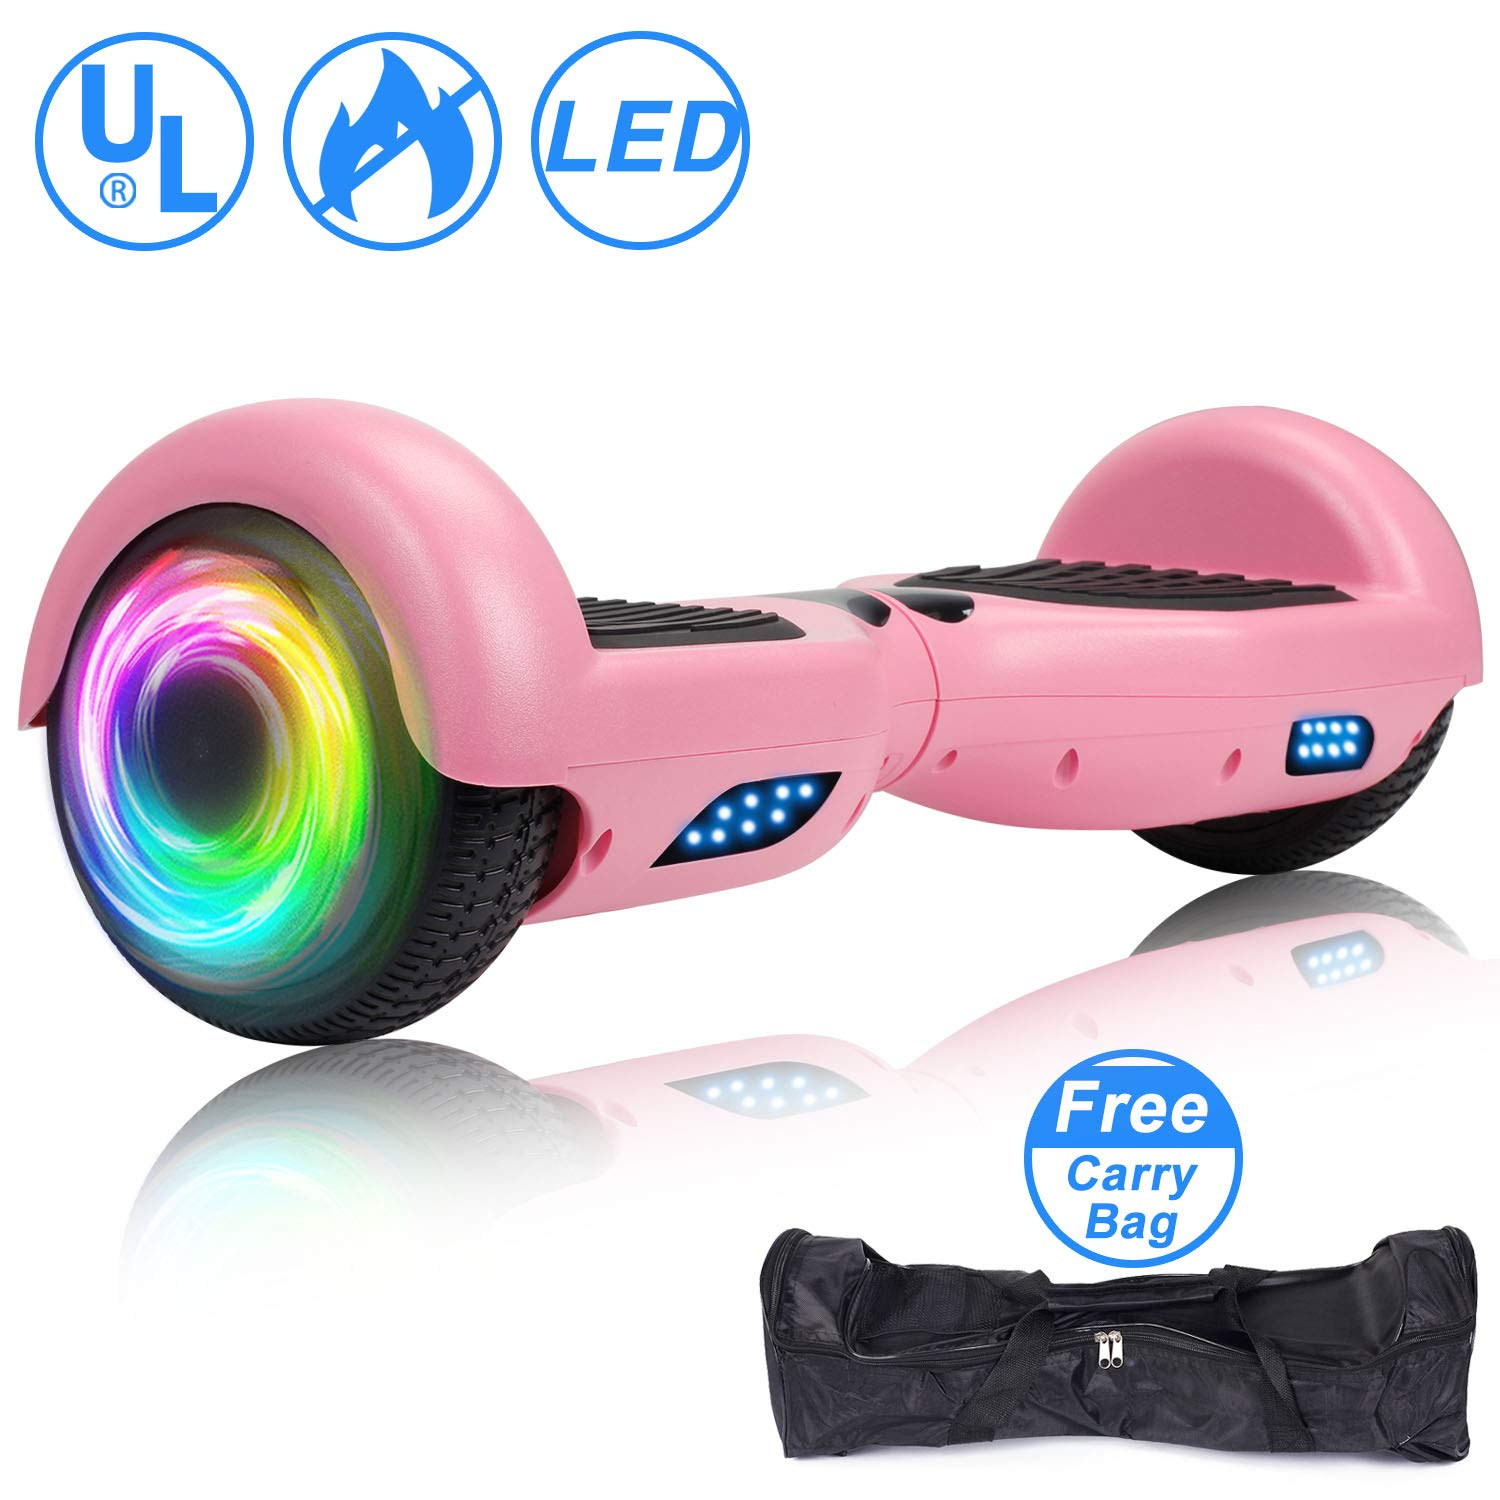 SISIGAD Hoverboard Self Balancing Scooter 6.5'' Two-Wheel Self Balancing Hoverboard with LED Lights Electric Scooter for Adult Kids Gift UL 2272 Certified - Pink by SISIGAD (Image #1)